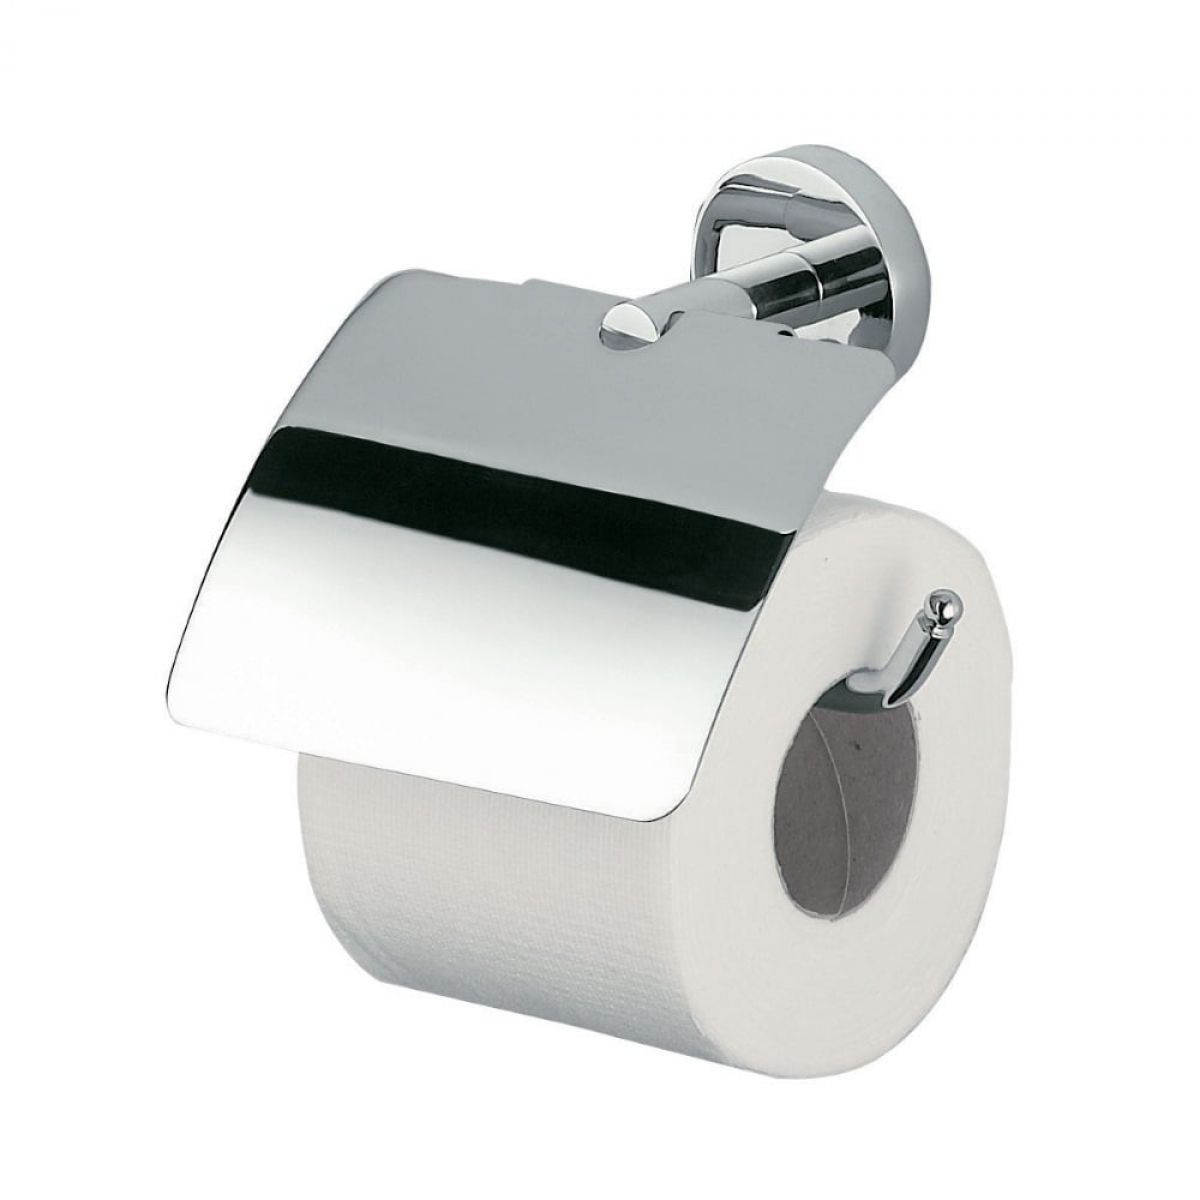 Inda forum toilet roll holder